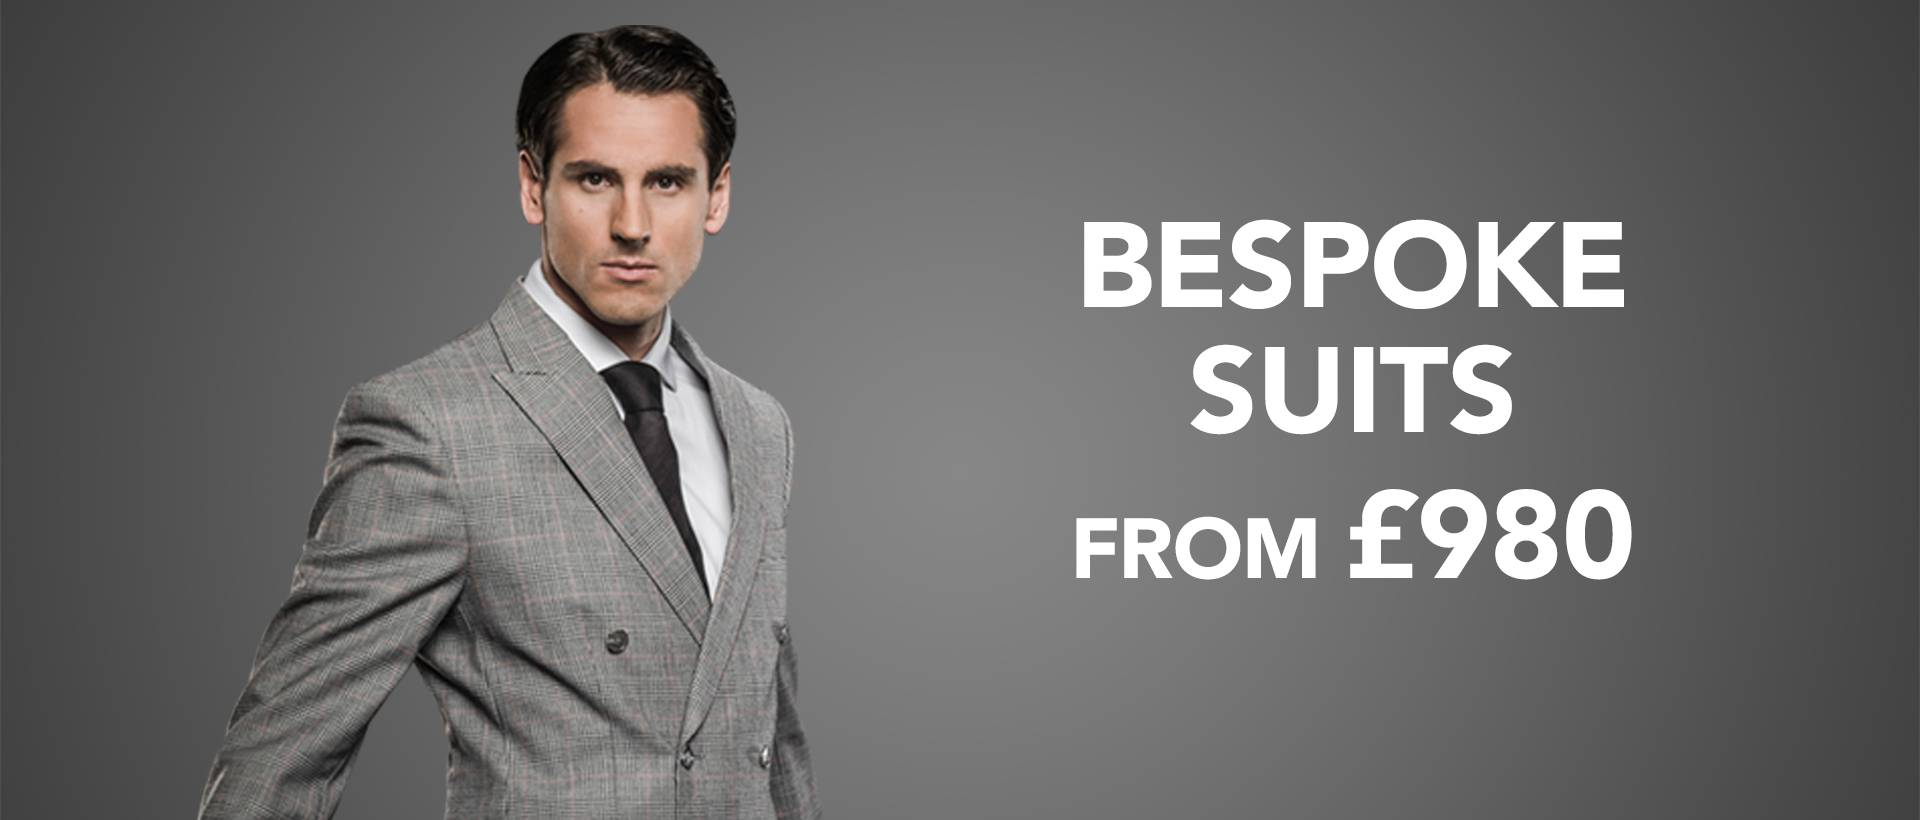 Bespoke Suits in London - Apsley Tailors - Apsley Tailors